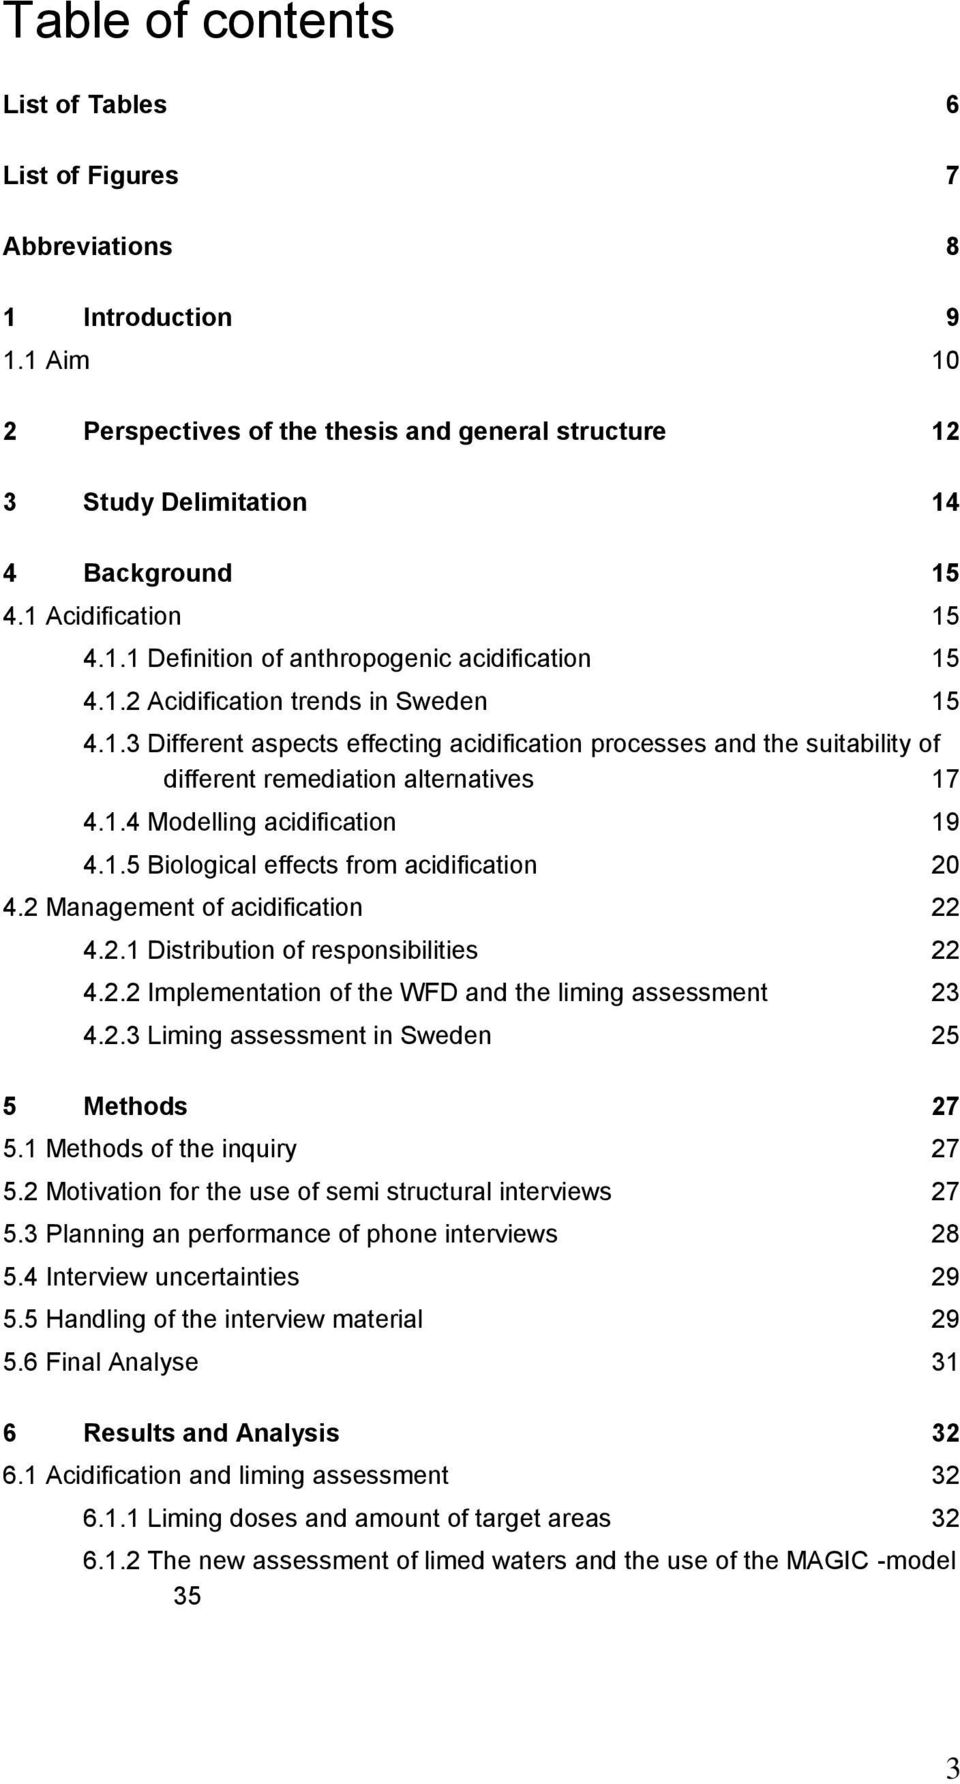 1.4 Modelling acidification 19 4.1.5 Biological effects from acidification 20 4.2 Management of acidification 22 4.2.1 Distribution of responsibilities 22 4.2.2 Implementation of the WFD and the liming assessment 23 4.